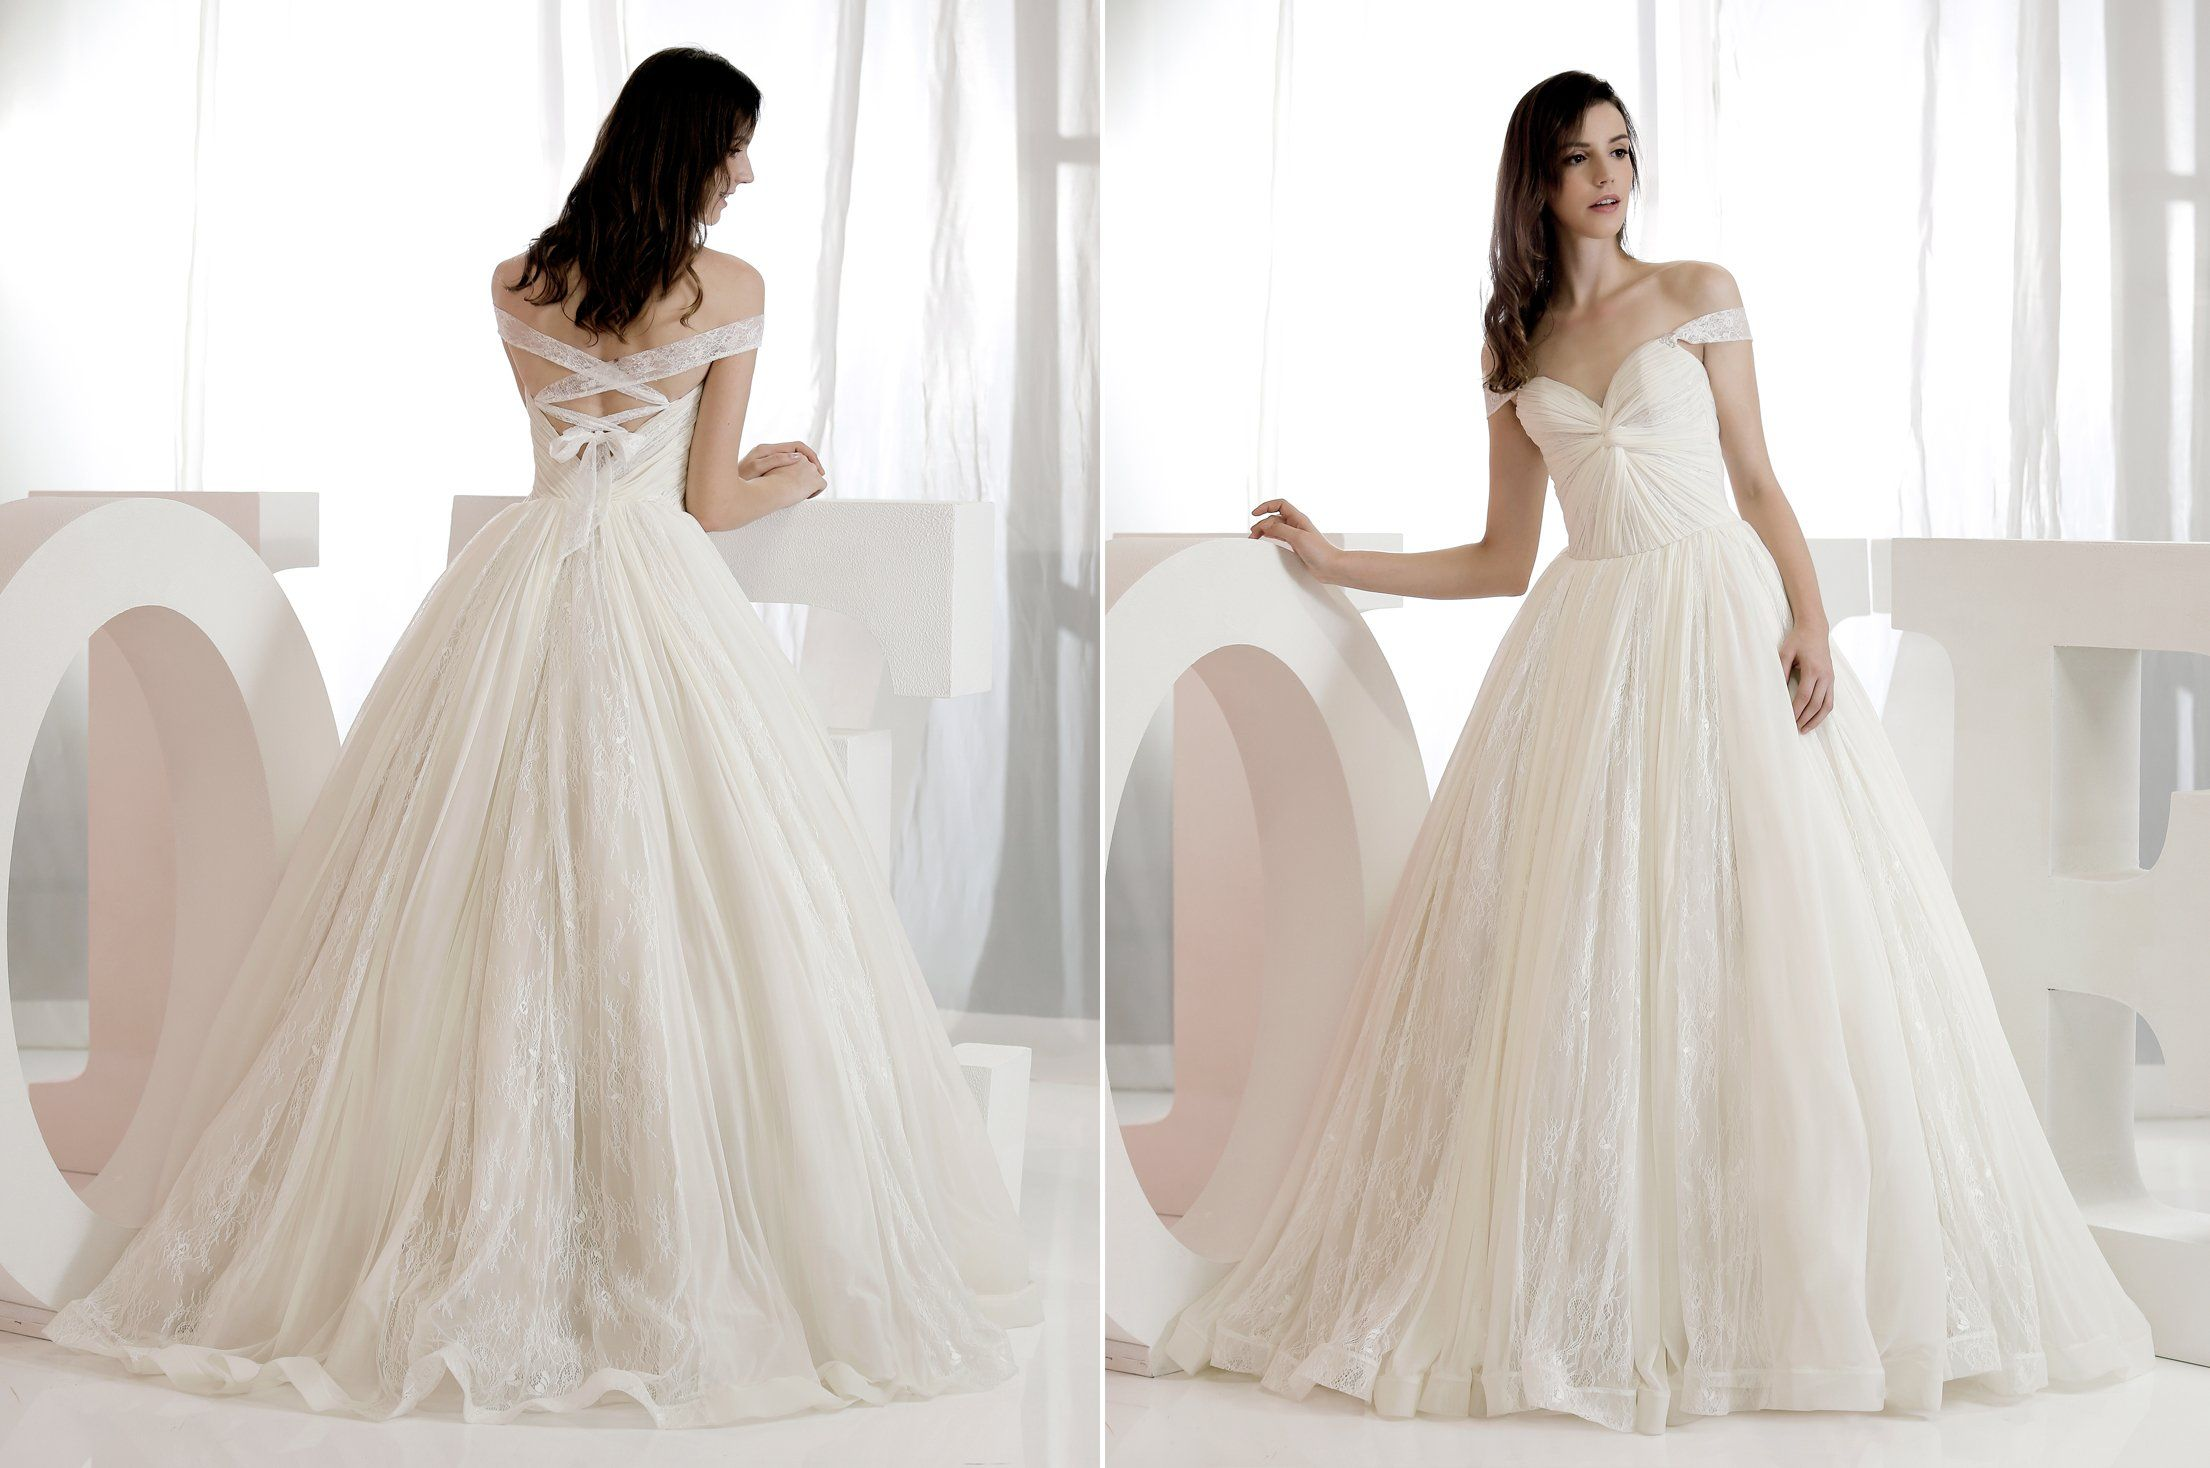 Where can i rent a wedding dress  Why buy when you can rent Let us glam you up for your every